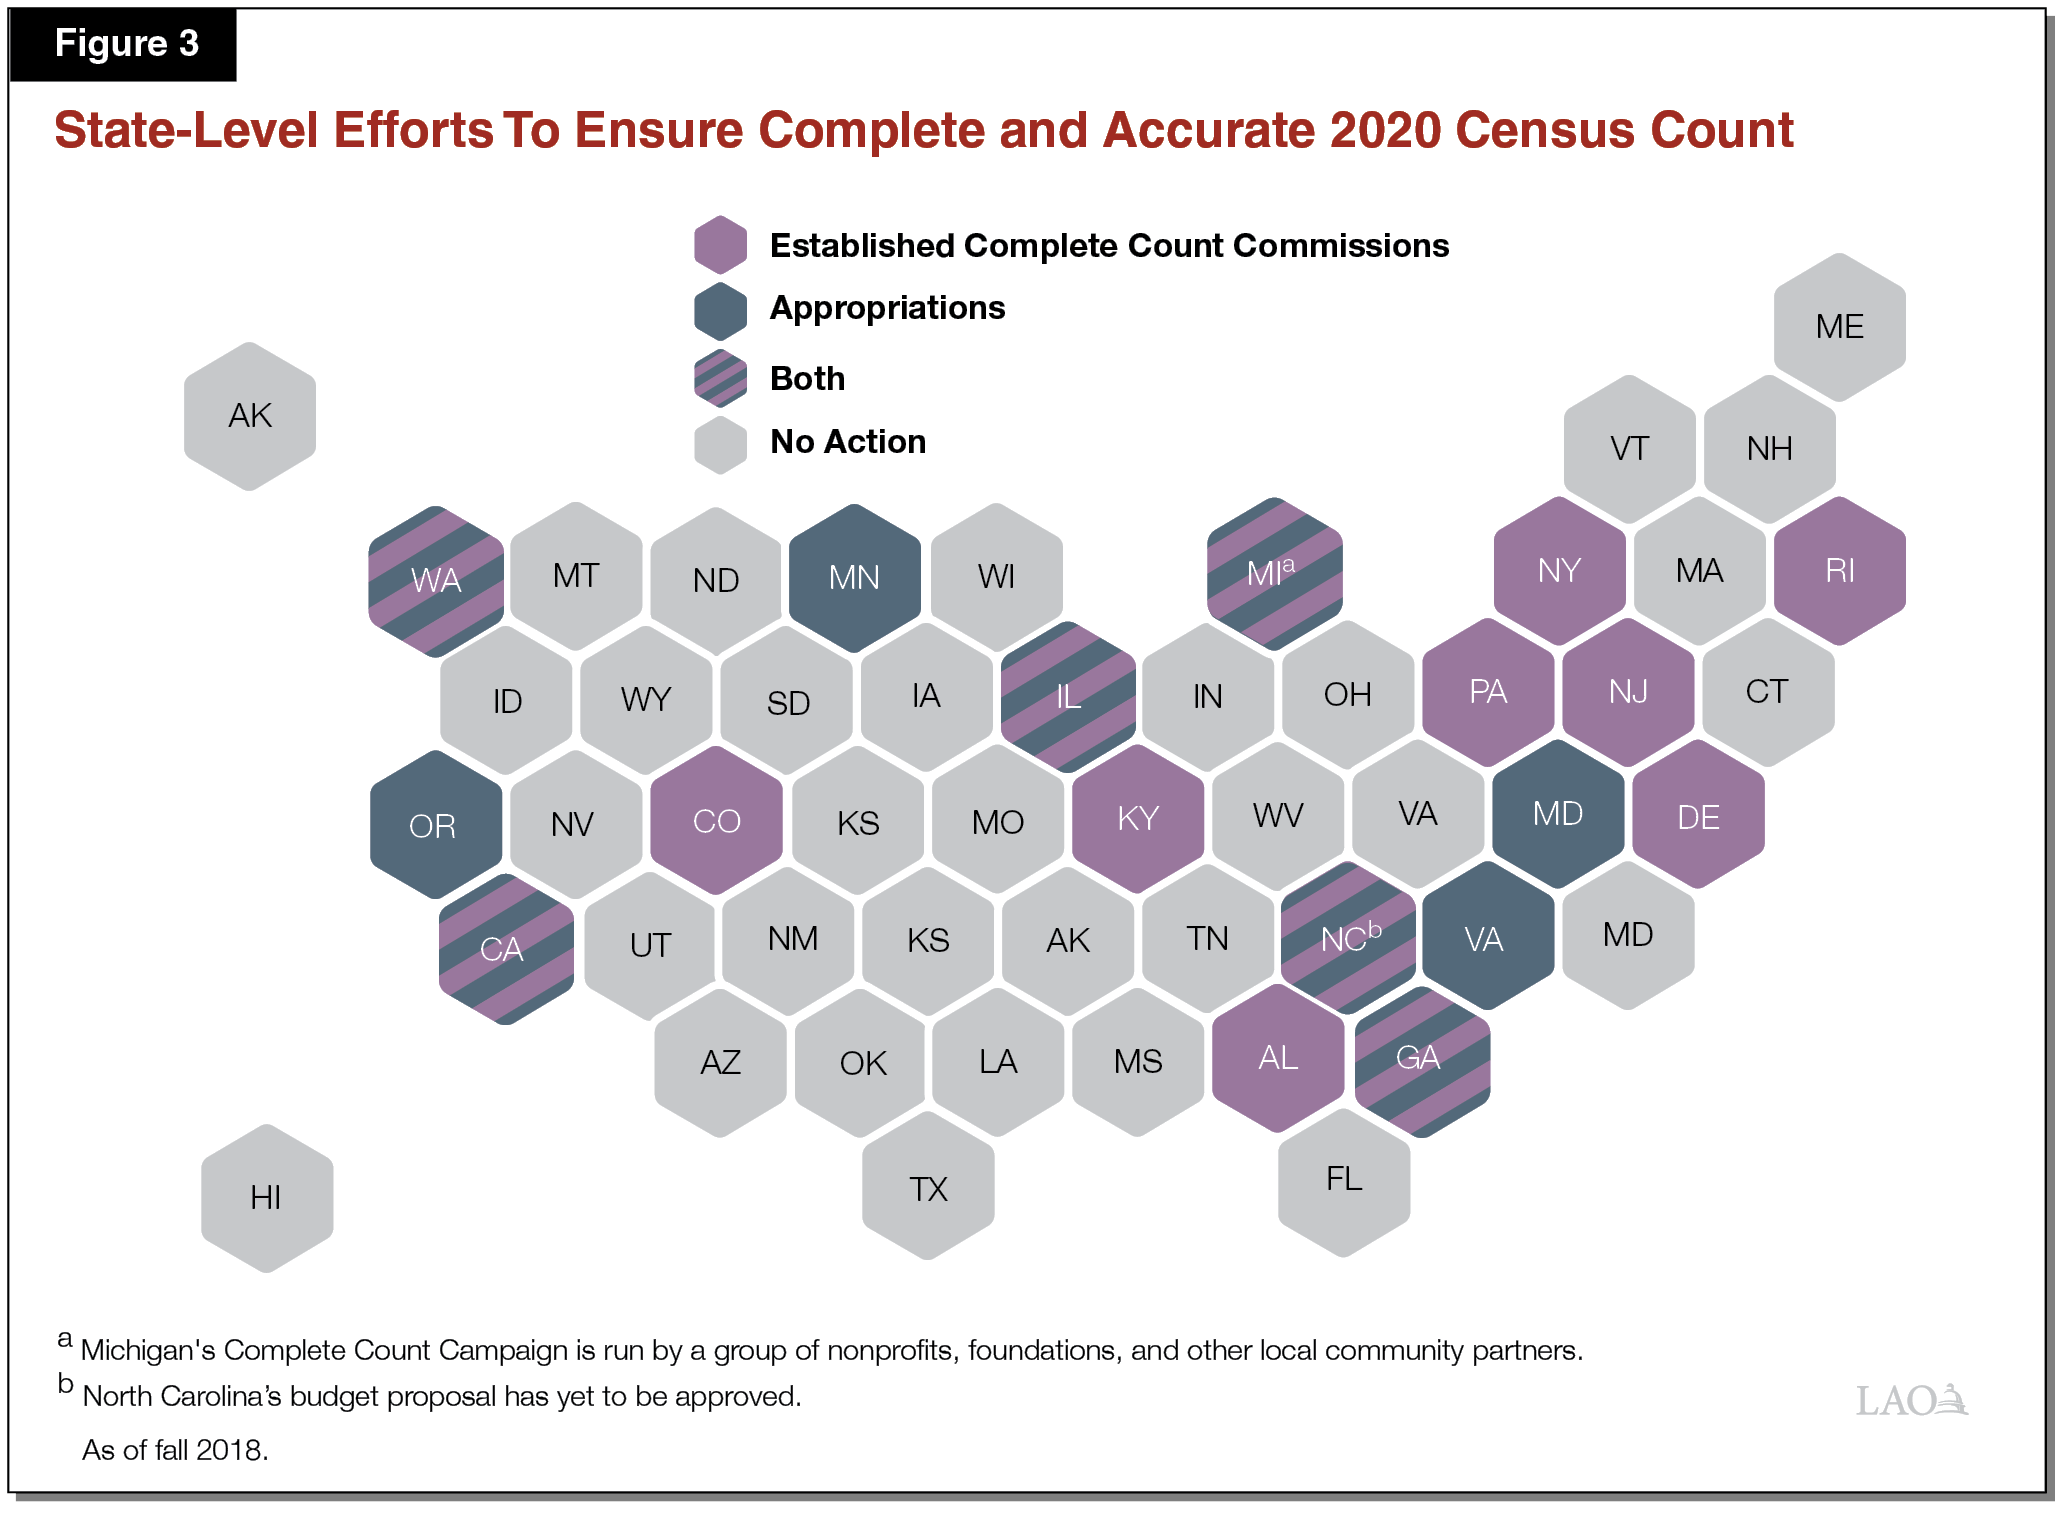 Figure 3 - State-Level Efforts To Ensure Complete and Accurate 2020 Census Count